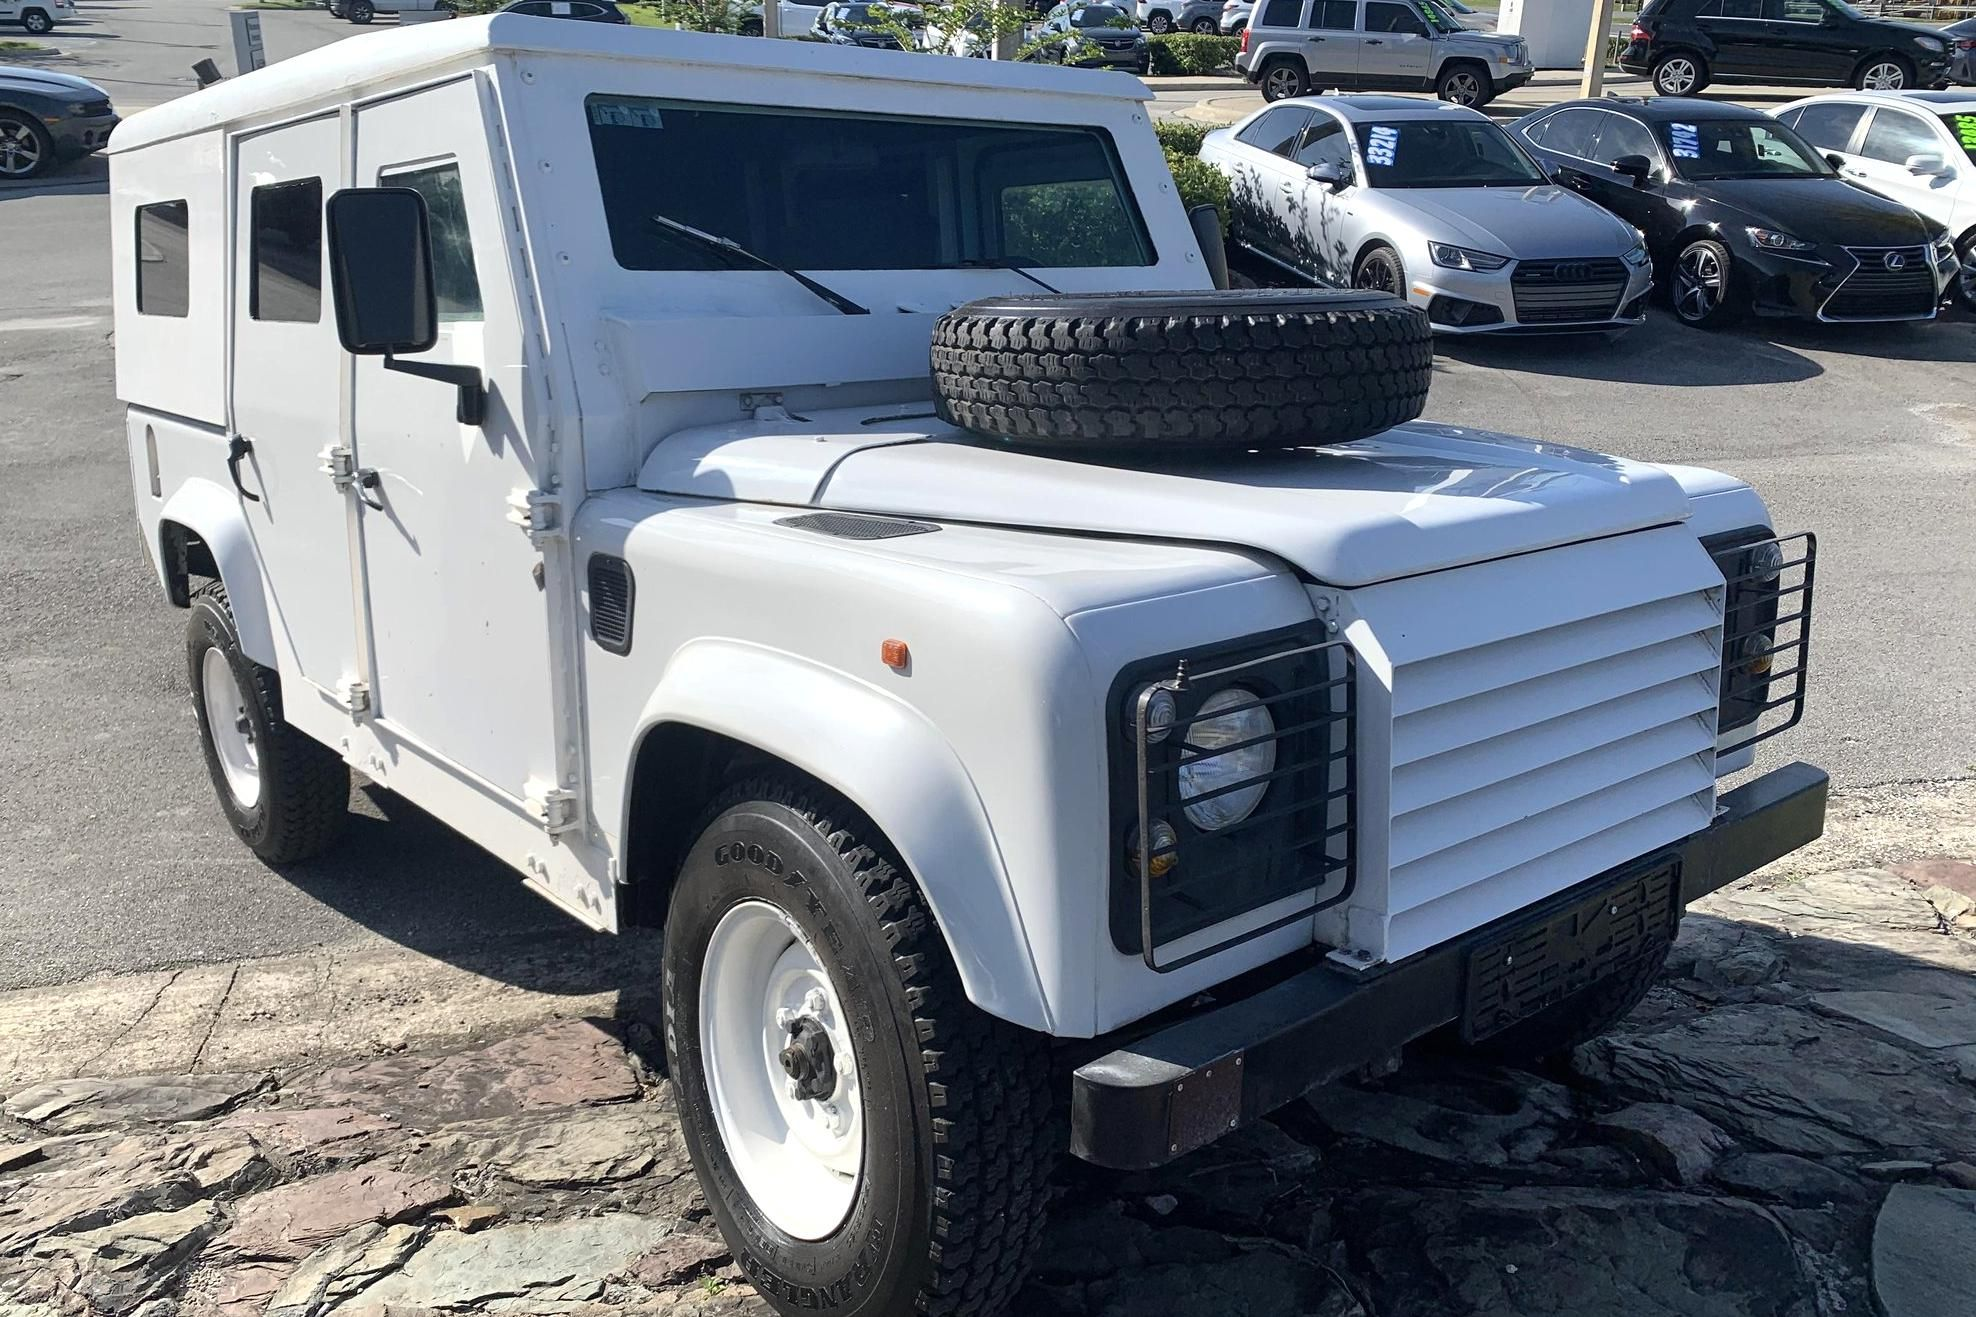 Cars & Bids is offering an armorclad Land Rover Defender for sale for just $20,000. The United Nations Organization deployed the car during an armed conflict in Bosnia and Herzegovina in the mid-1990s.